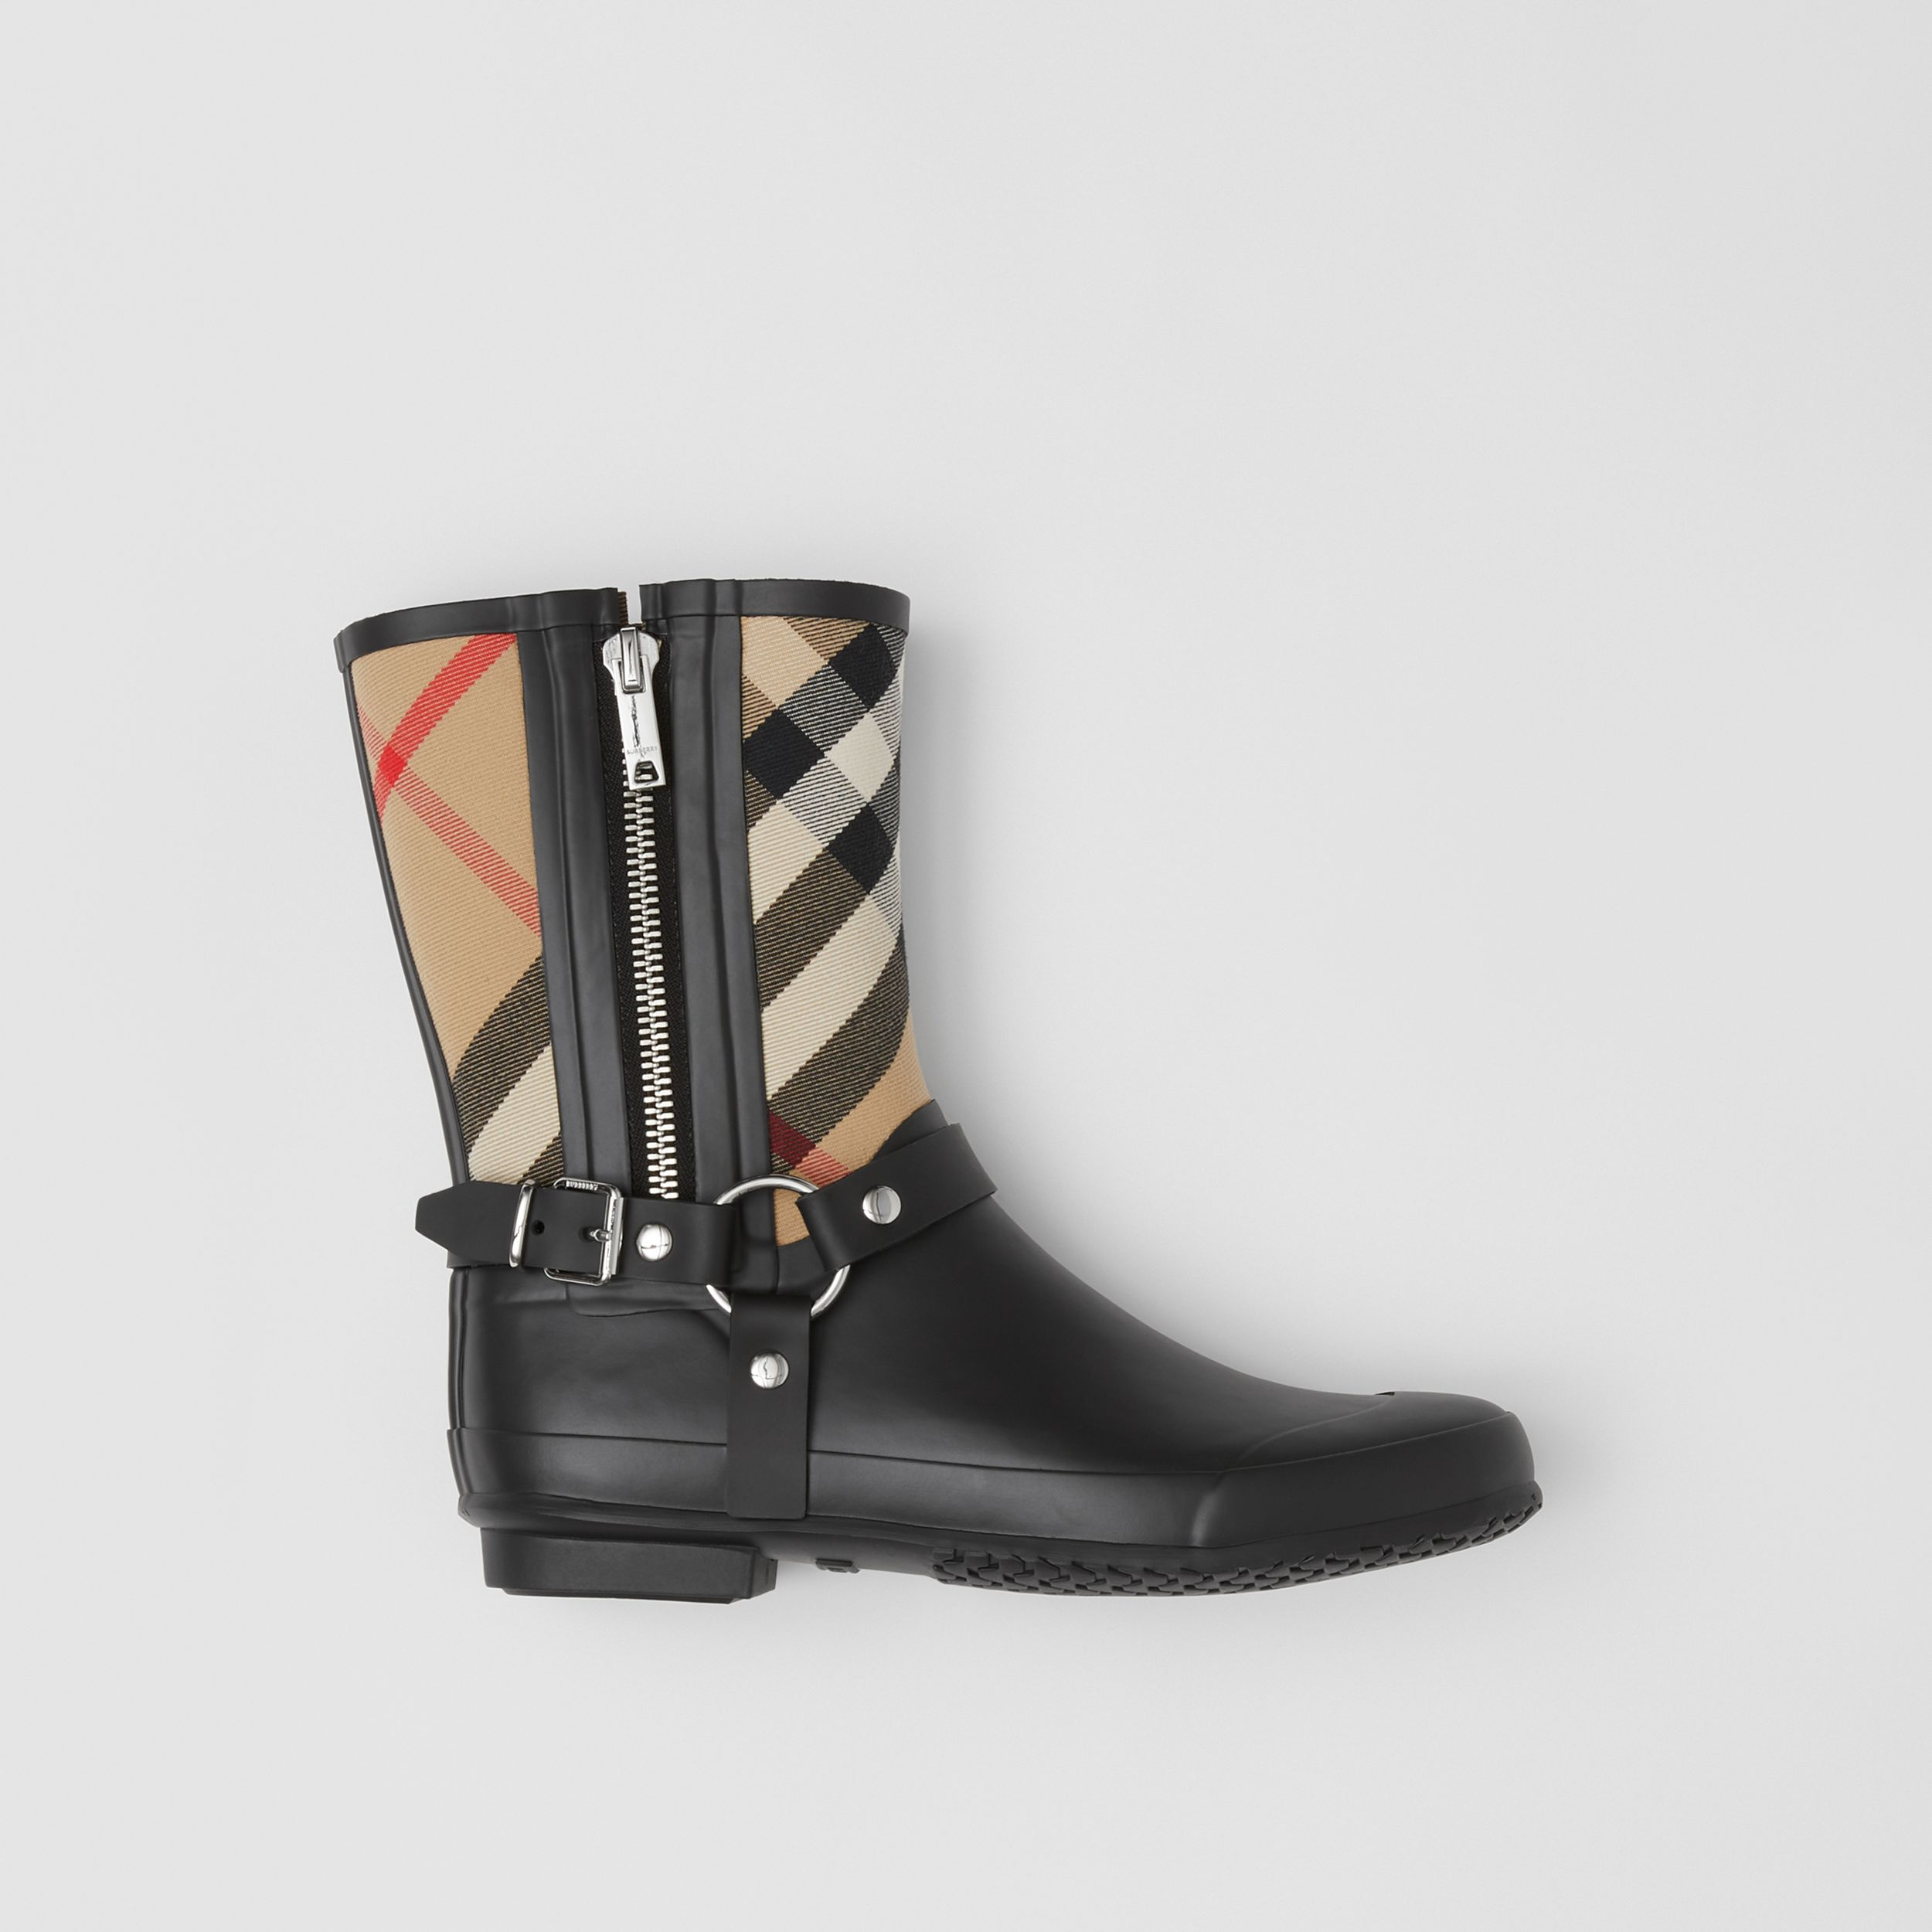 Strap Detail House Check Rubber Rain Boots in Black/archive Beige - Women | Burberry - 1